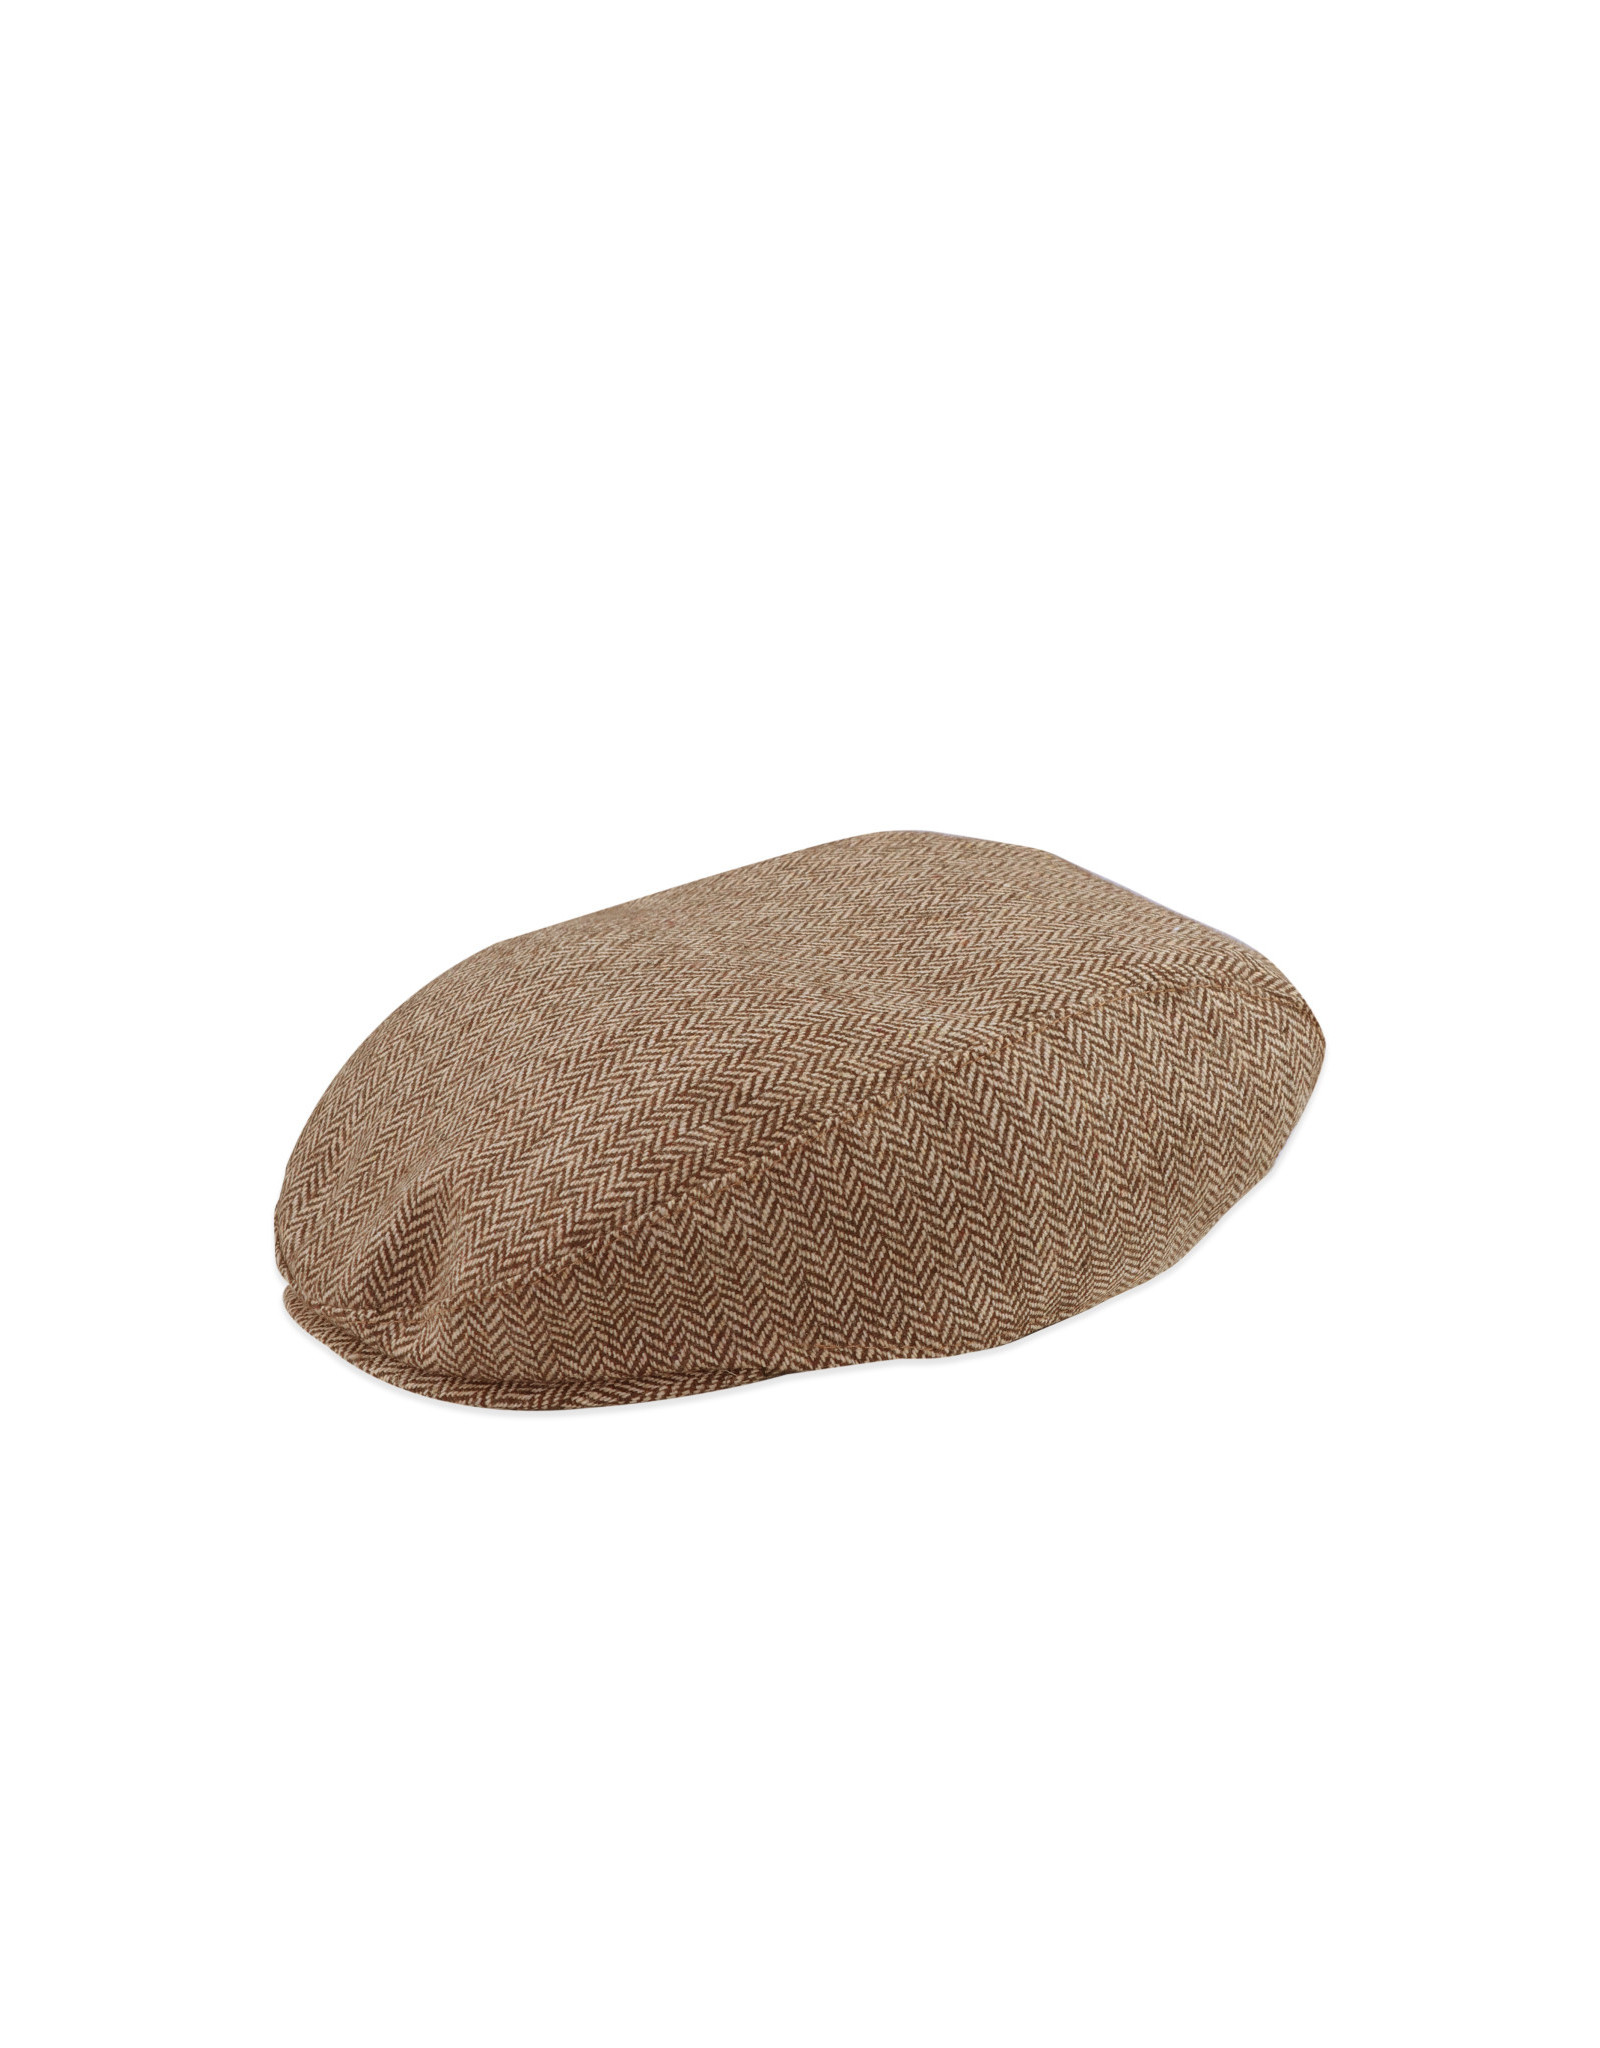 Ammehoela Grandpa cap dark brown